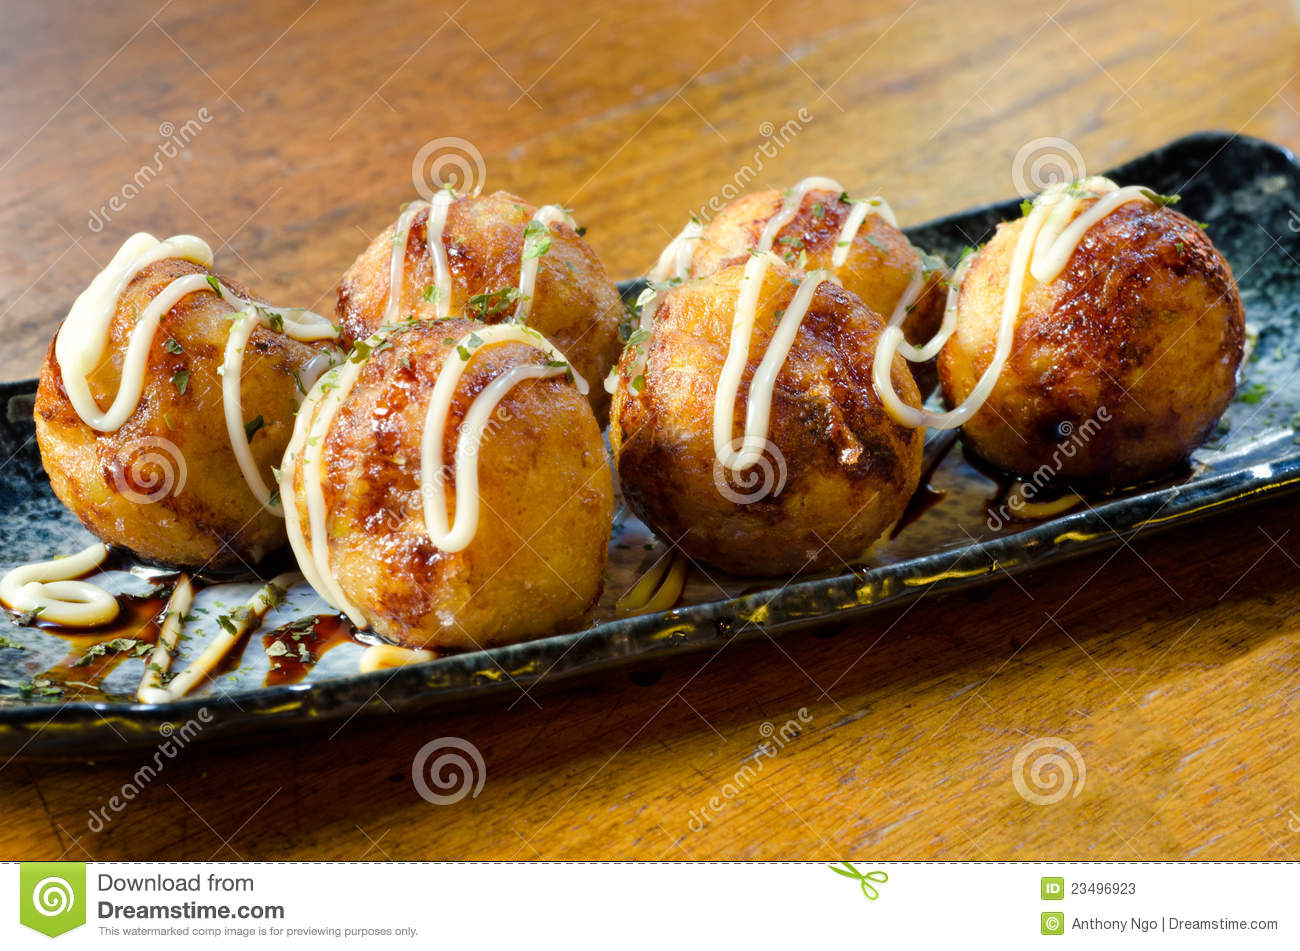 Takoyaki octopus - photo#19